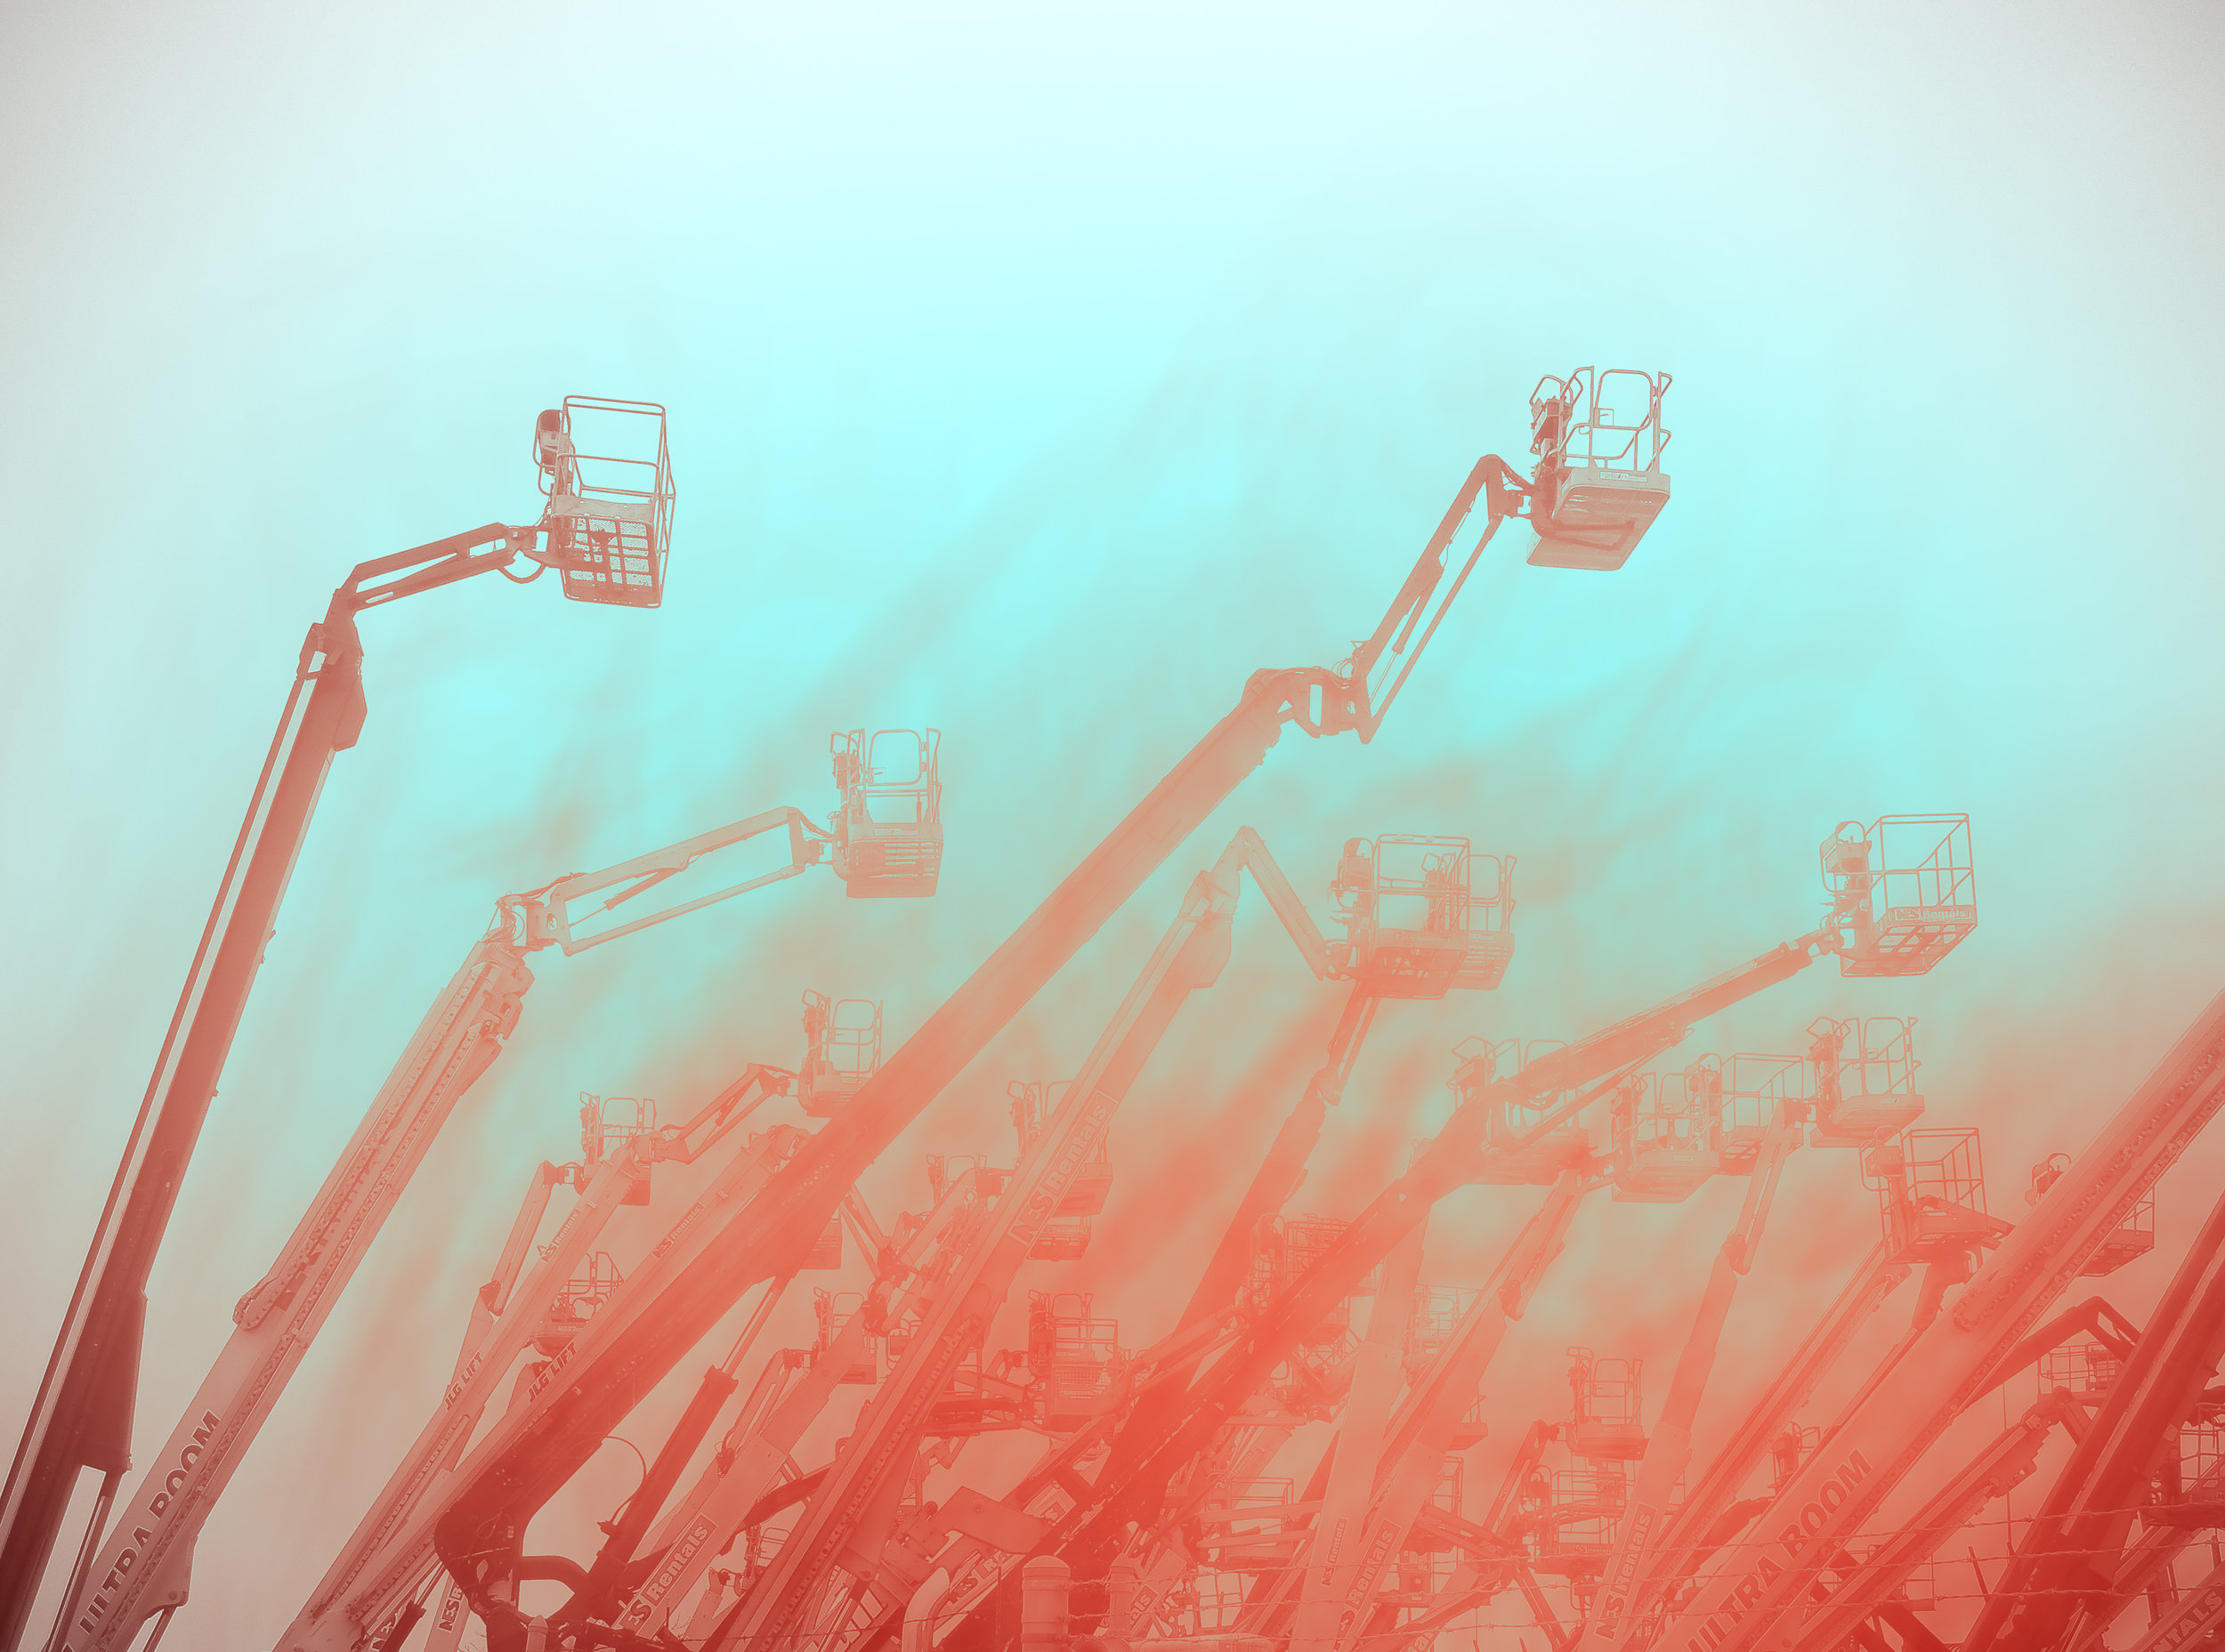 "Cranes with Vermillion and Phthalo Blue 6:31pm , digital photograph, 13"" x 19"", $225"